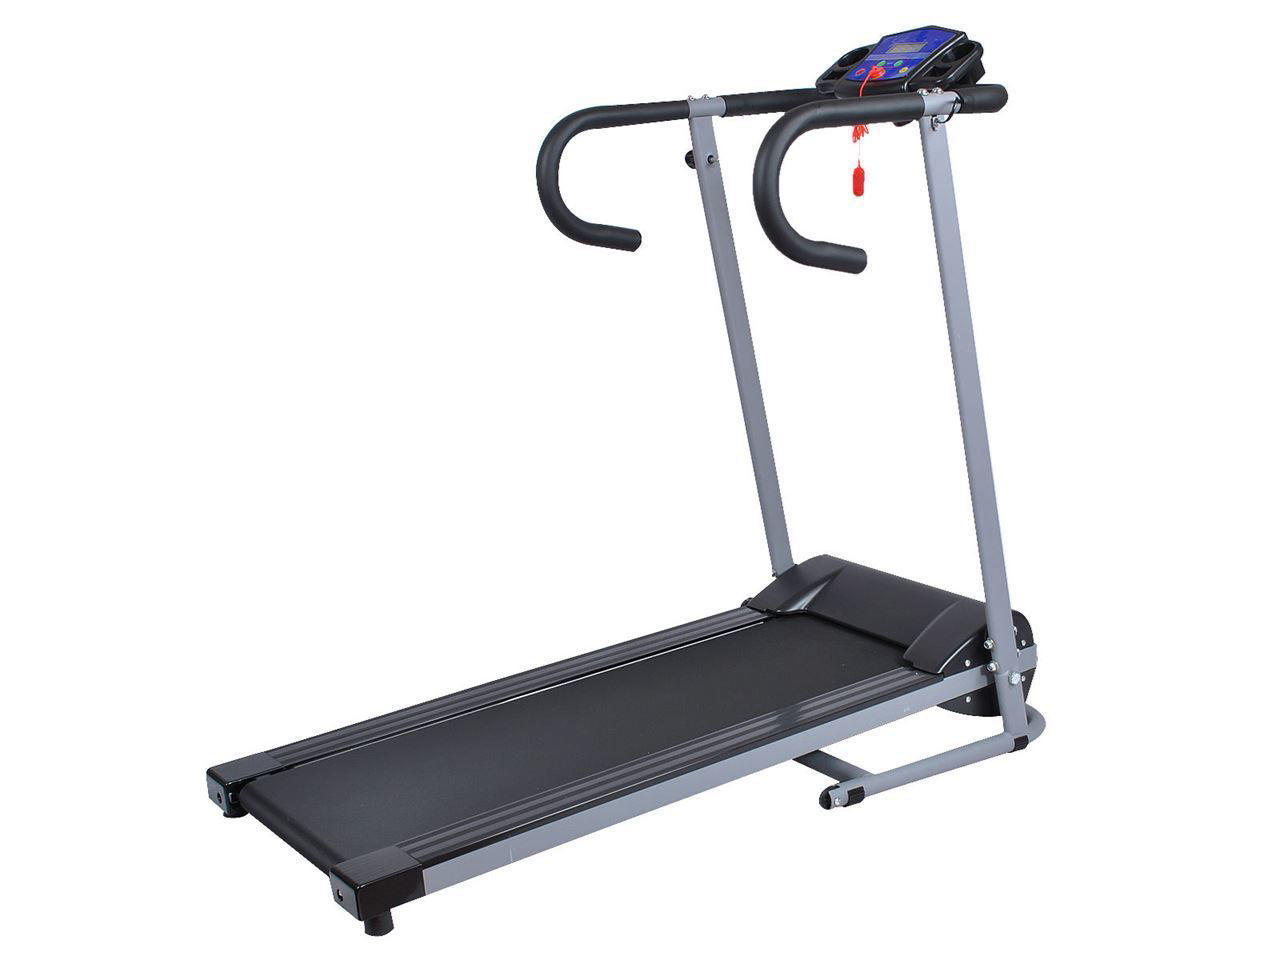 Picture of Treadmill Folding Electric Portable 500W Black